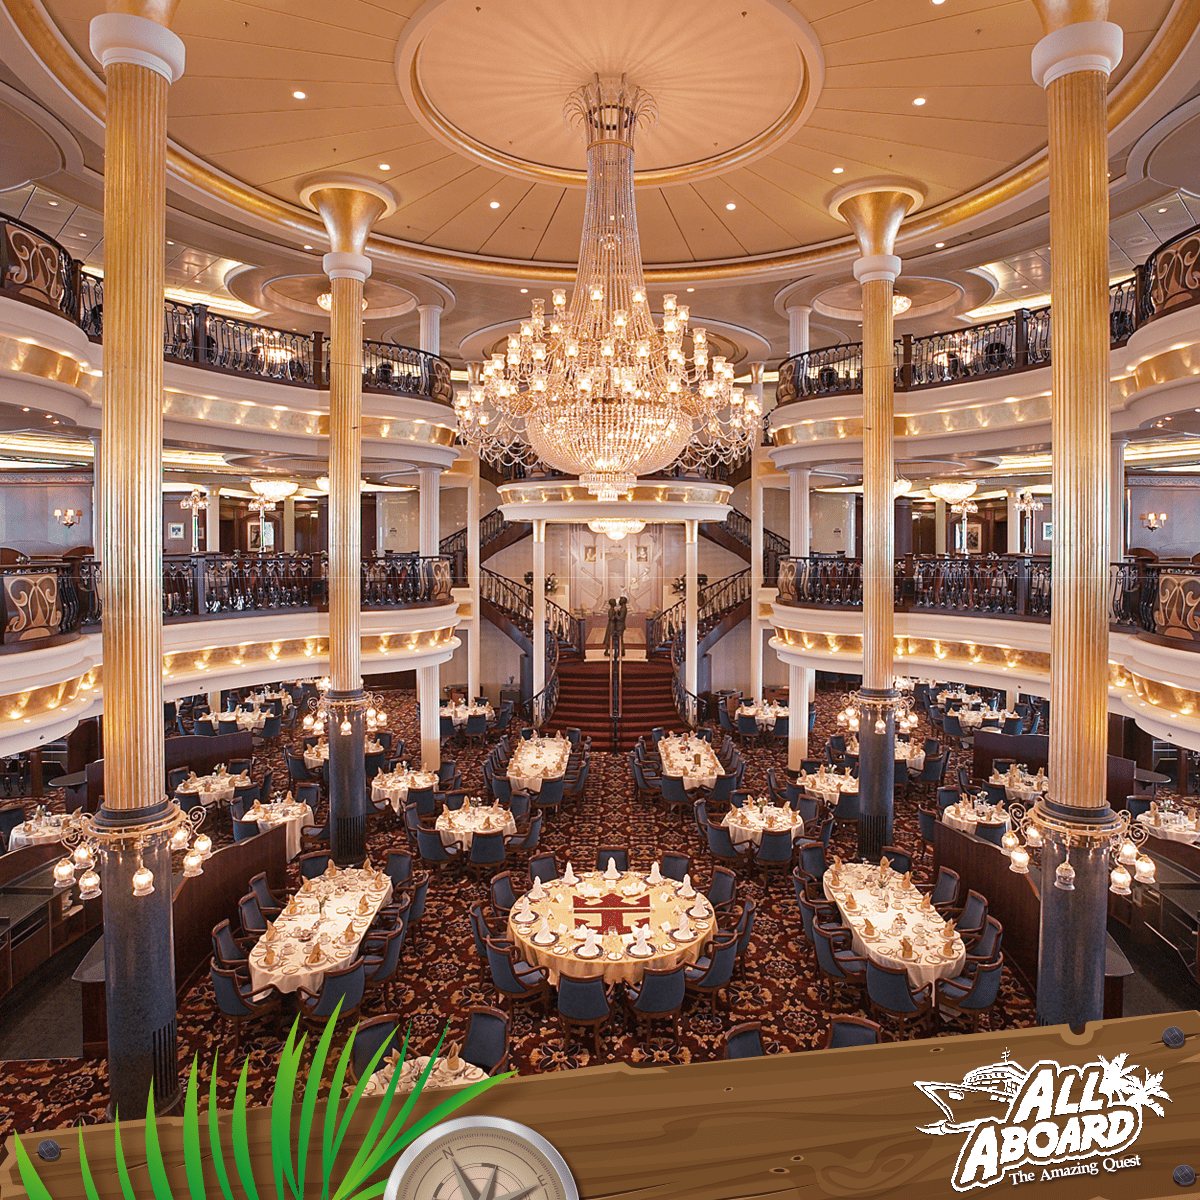 Dine in the Royal Mariner of the Seas' grand dining zone for a dining experience fit for royalty!